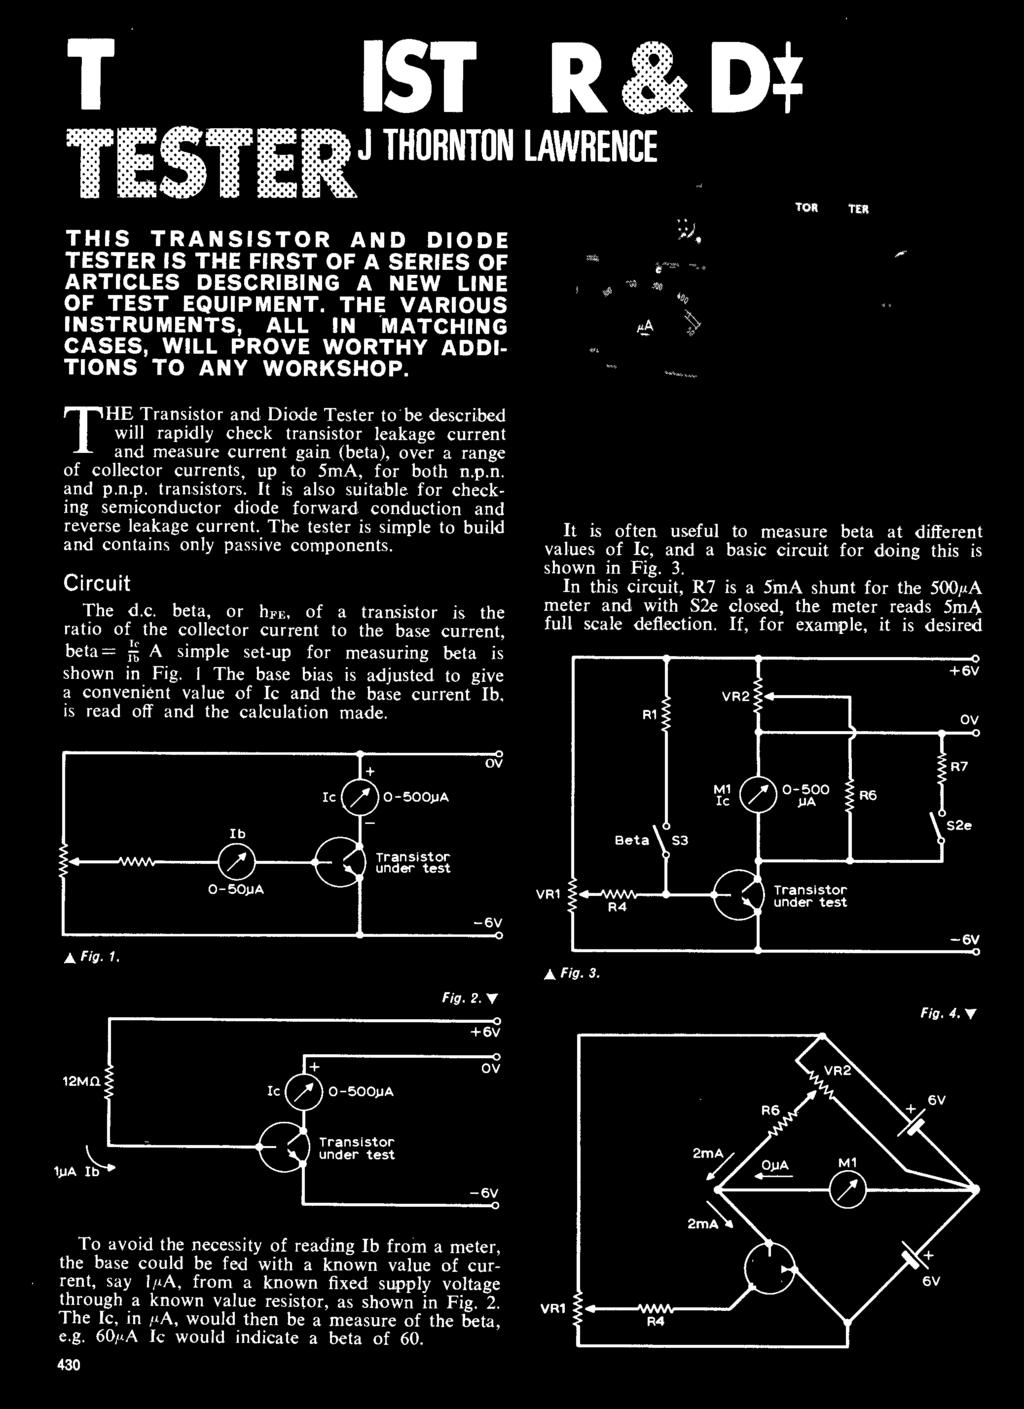 Us Office M Swedgal 258 Broadway New York Ny Ixac Ierc Beam Fig 422 Baxandall Tone Control Circuit Thornton Lawrence The Transistr And Dide Tester T Be Described Will Rapidly Check Leakage Current